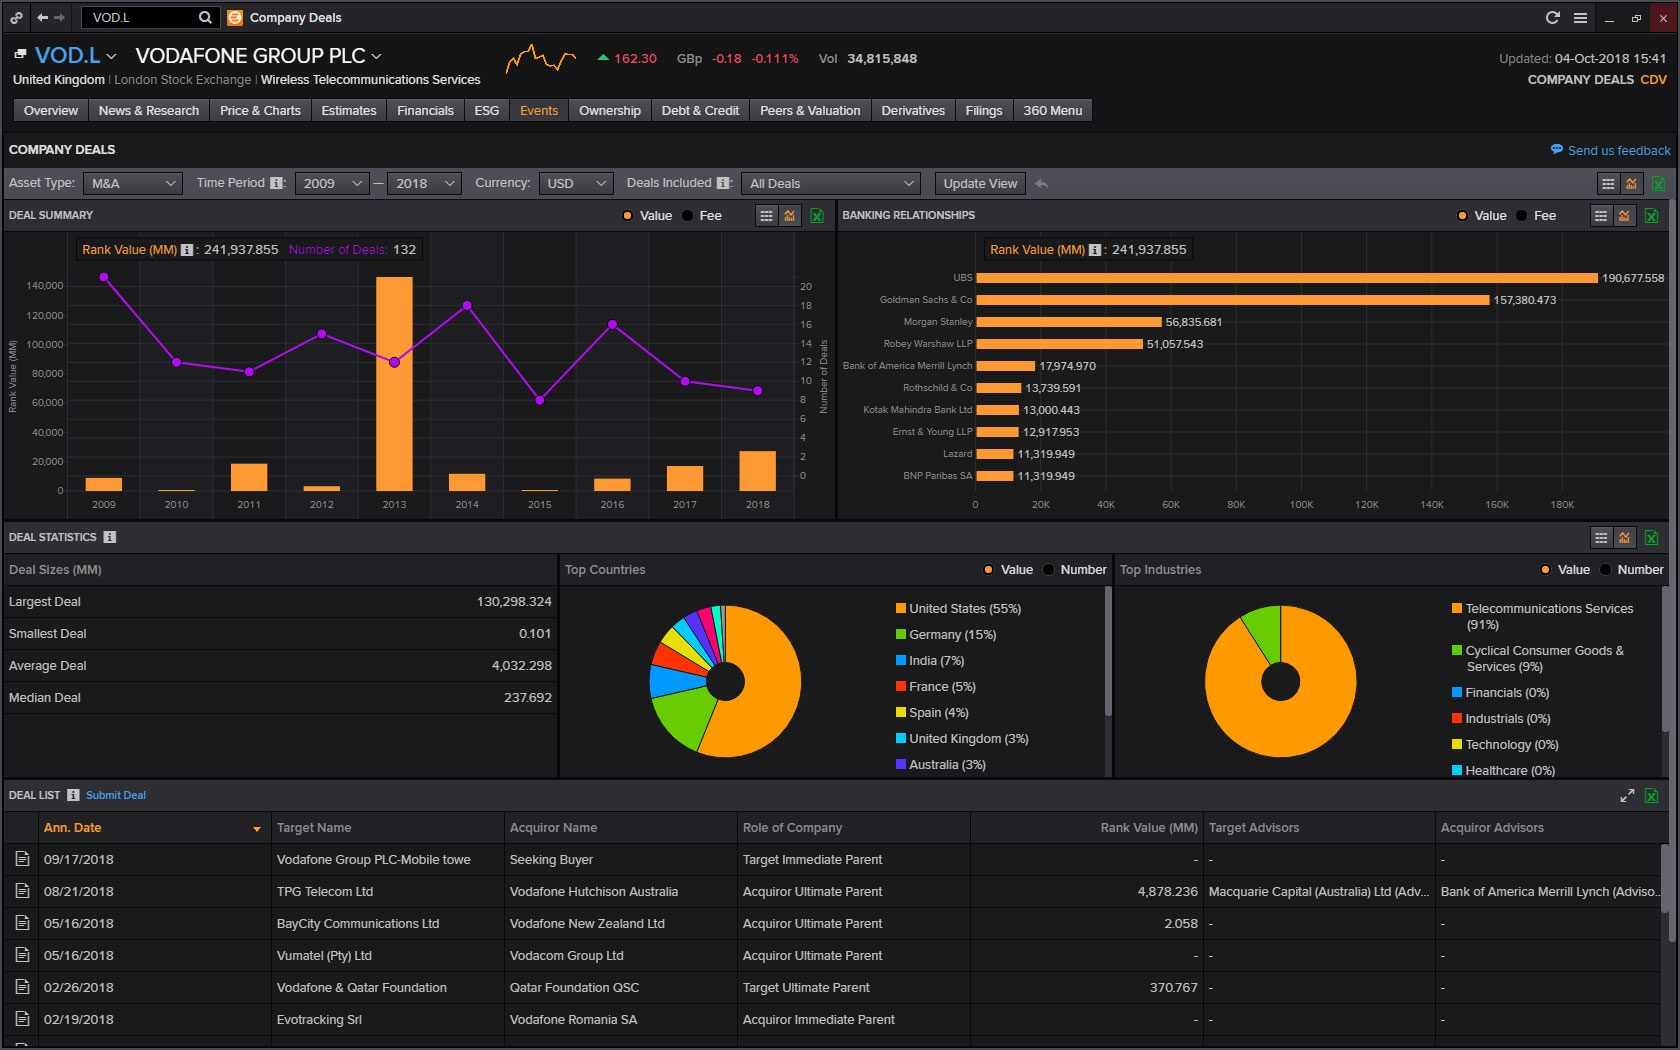 Eikon specs and downloads | Refinitiv